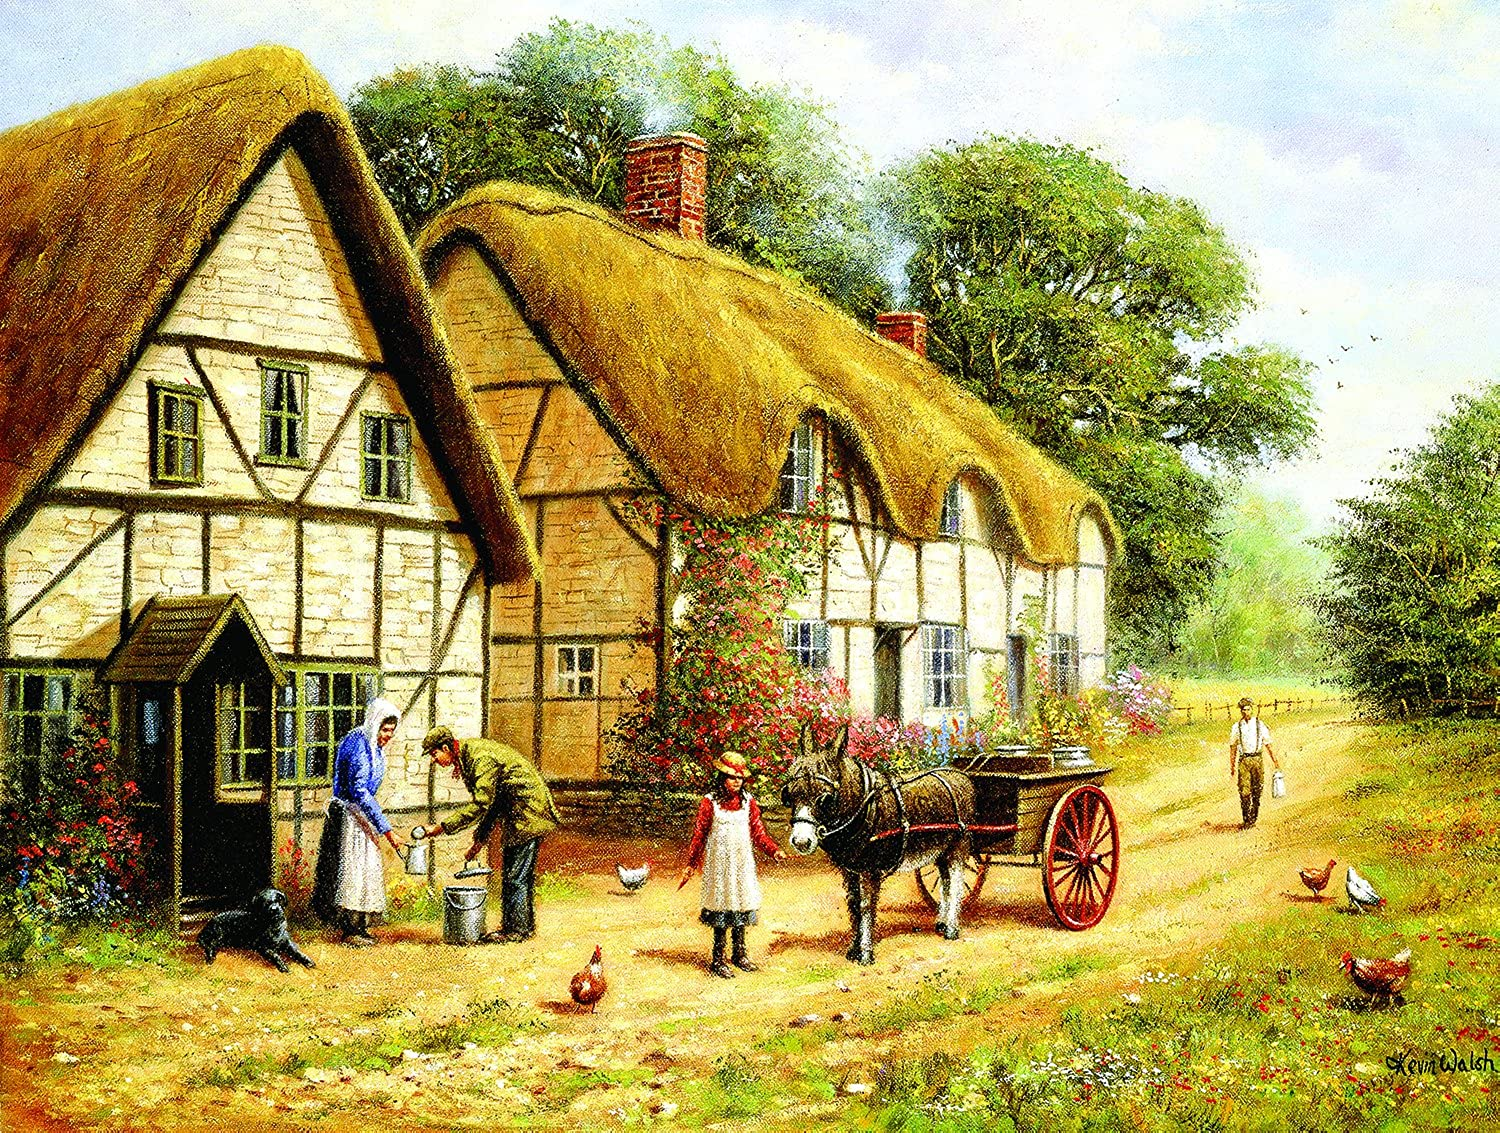 SunsOut 13649  Walsh  Delivering the Milk  500 pieces jigsaw puzzle